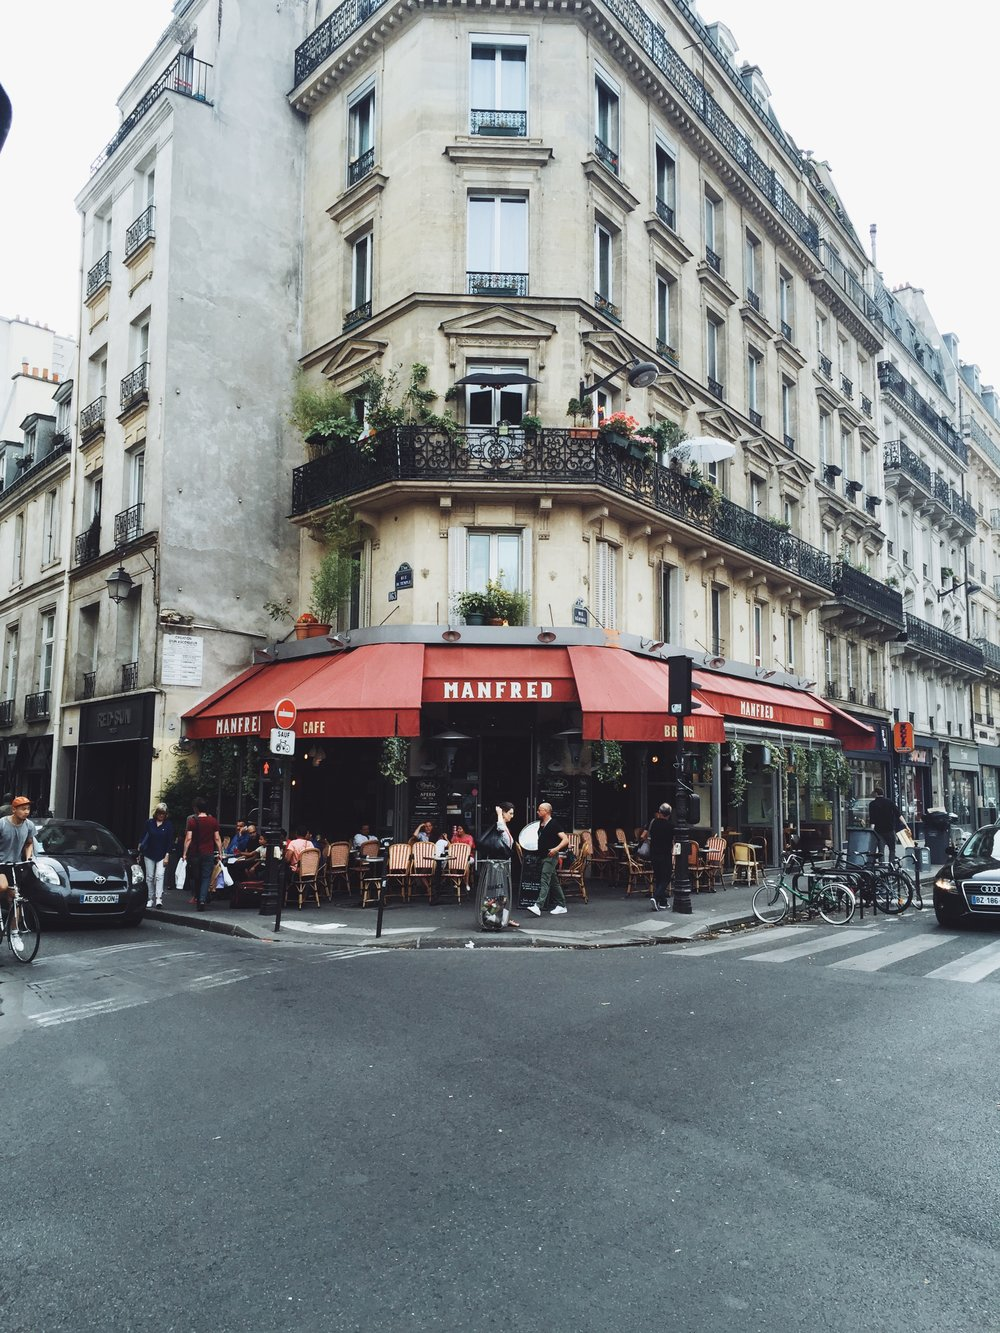 Paris - Café Manfred